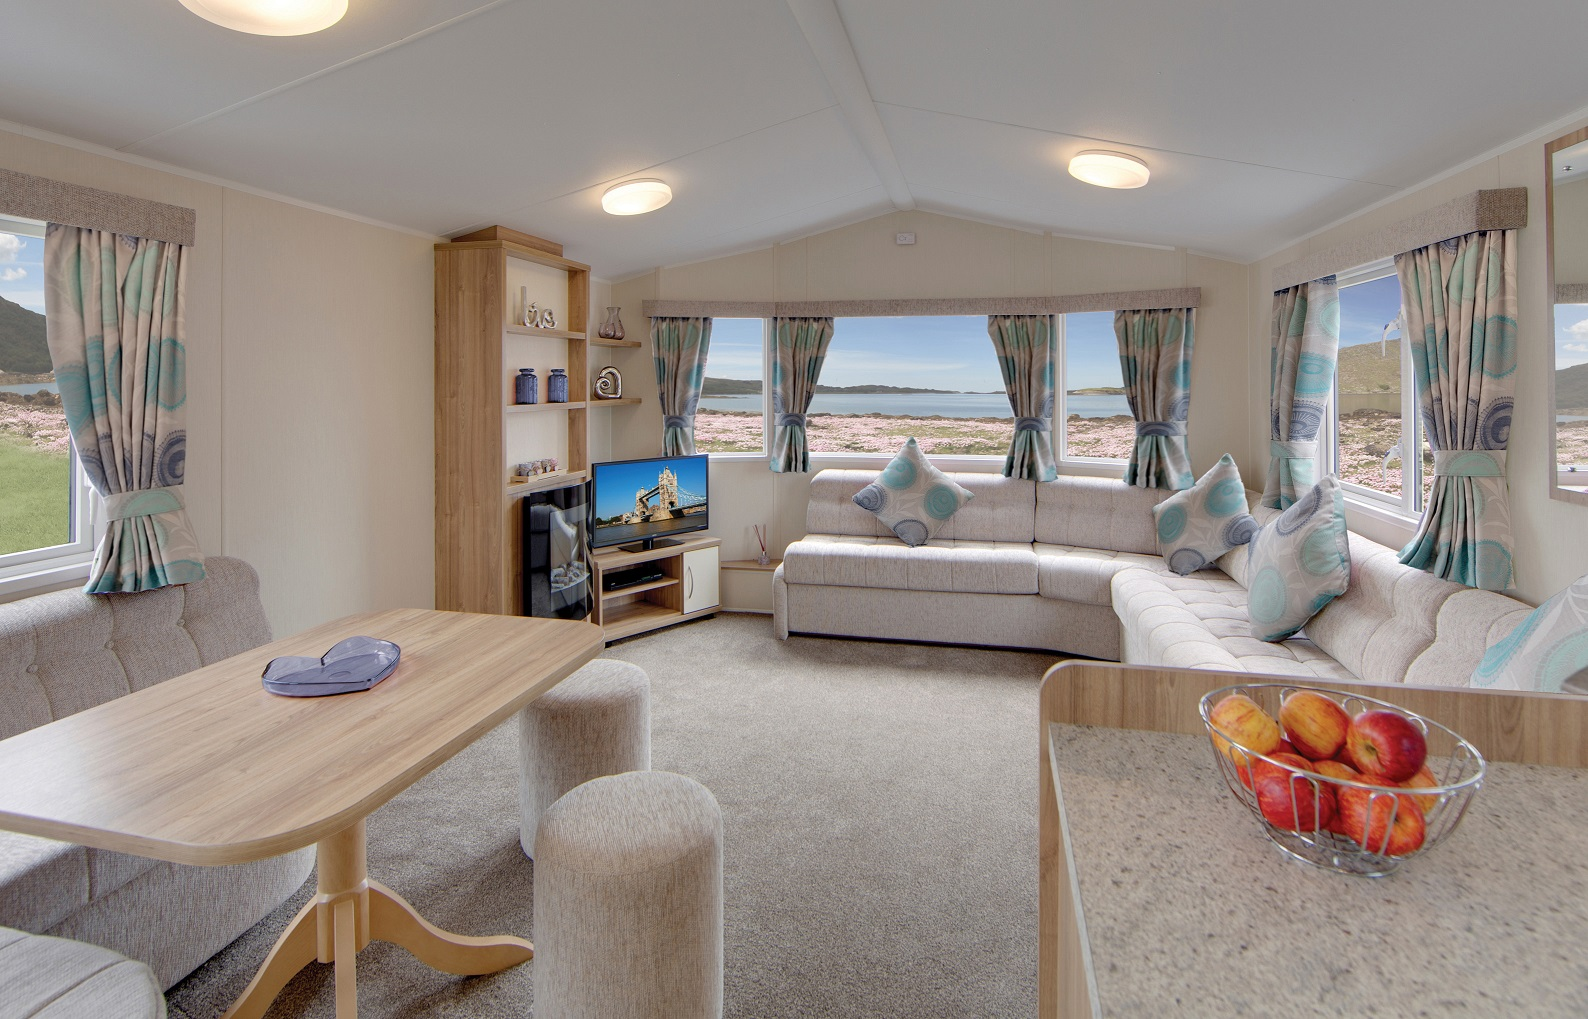 Willerby Rio Gold: New Static Caravans and Holiday Homes for Sale, Available at Factory Large Image 1